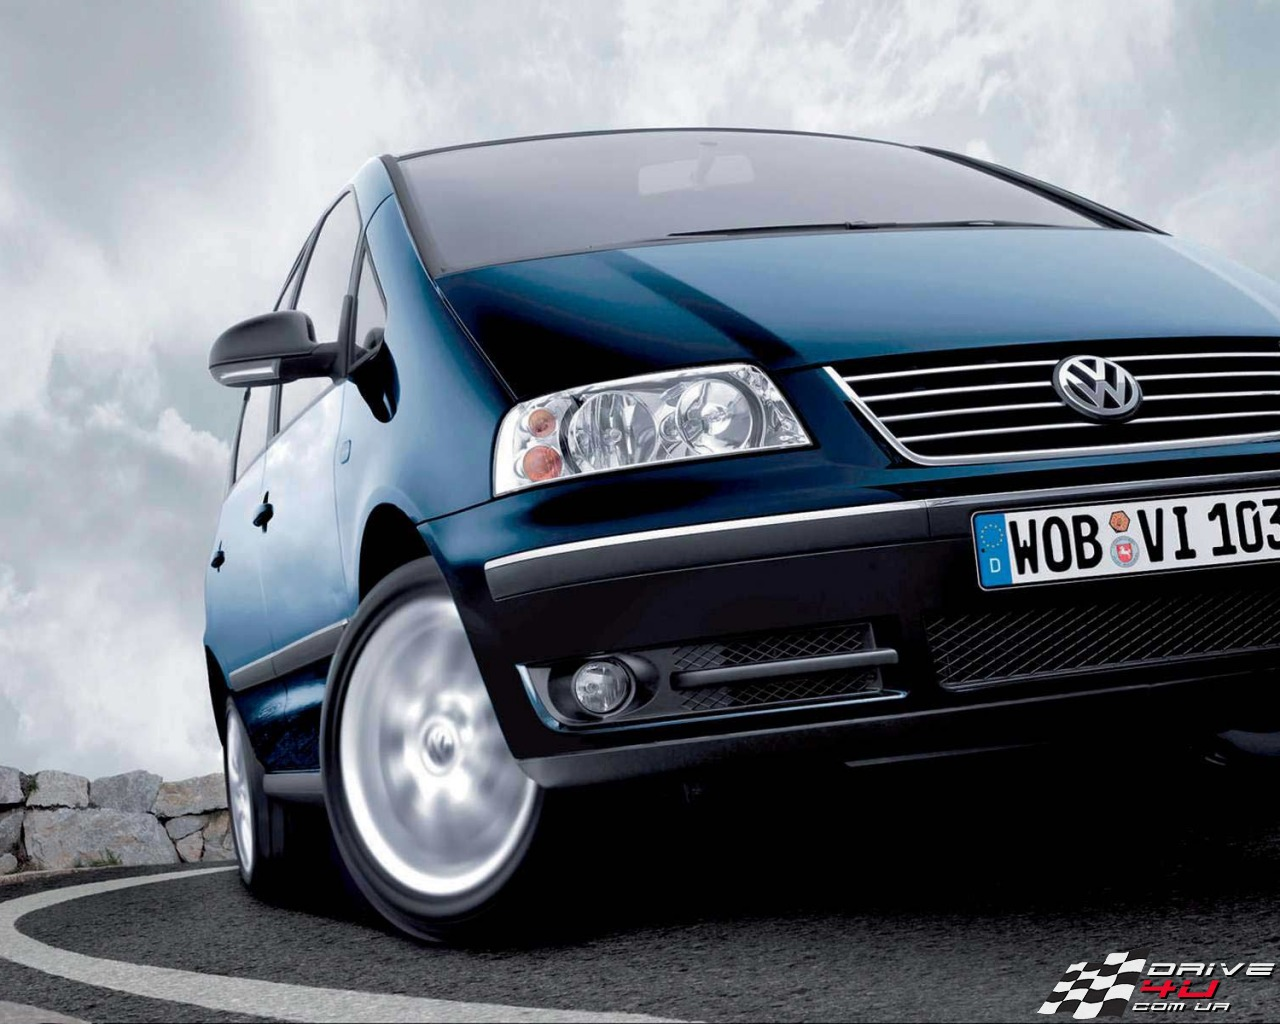 Volkswagen Sharan 2.8 V6 4Motion